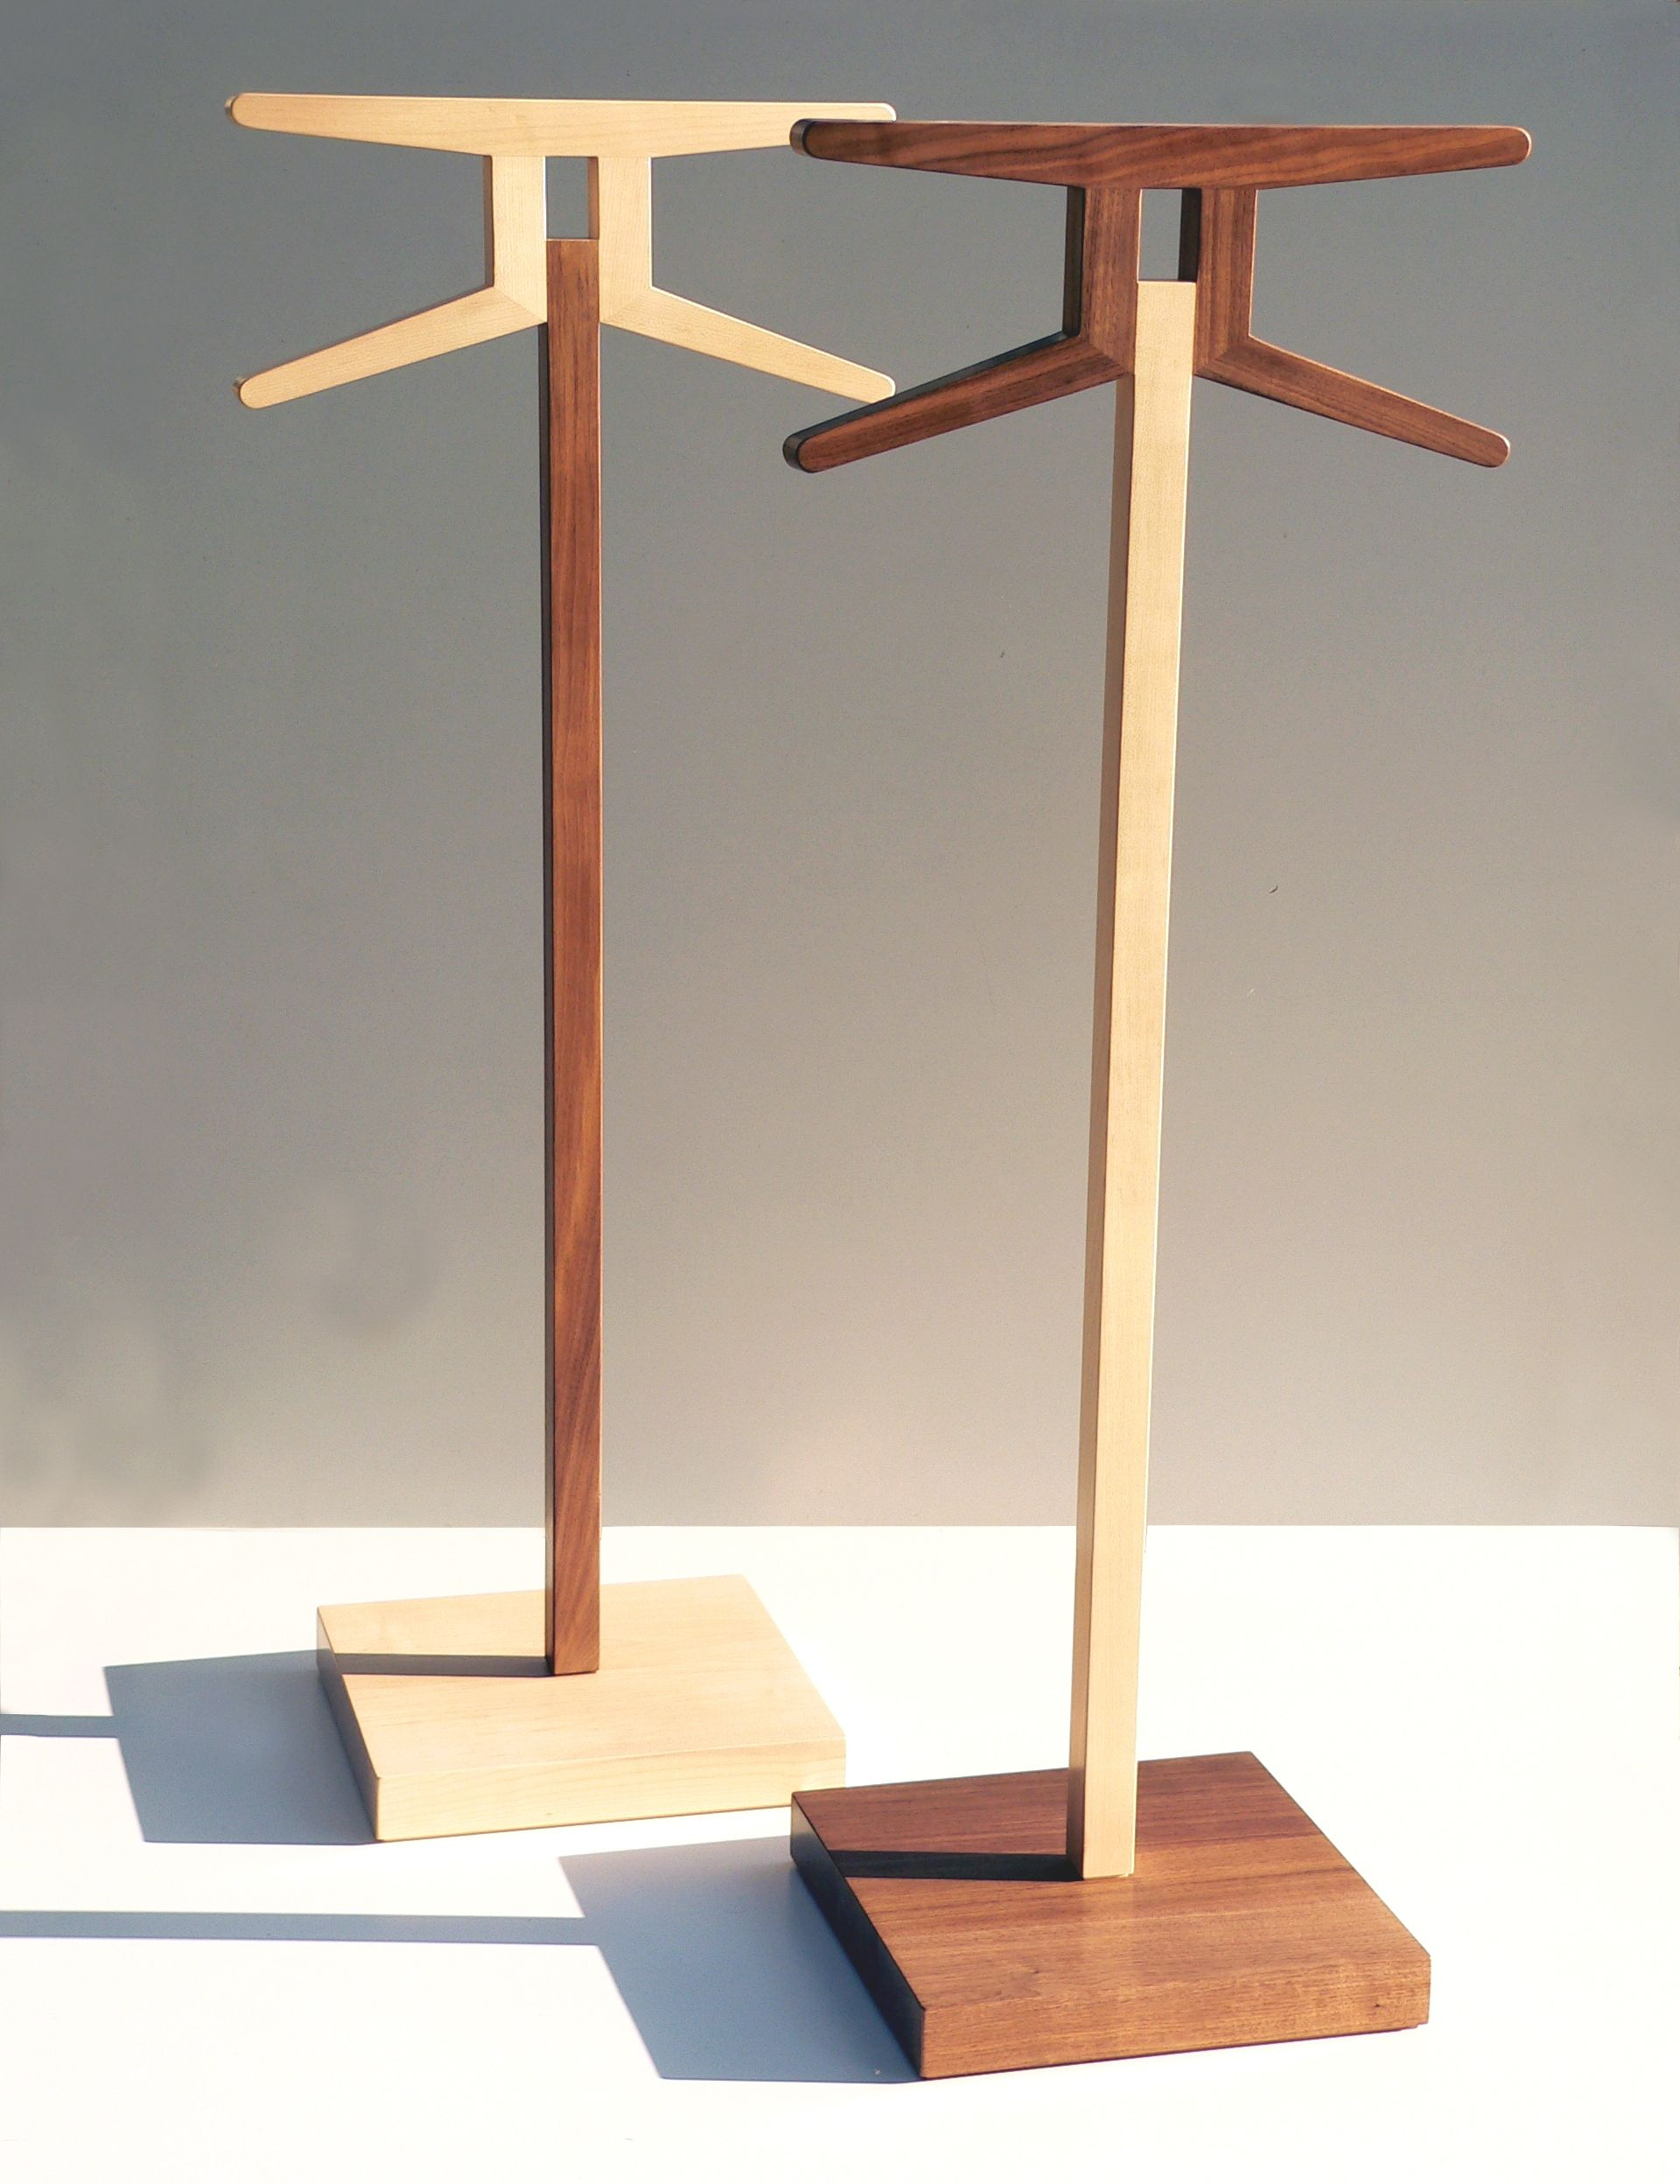 Herrendiener Modern Insilvis Signs Valet Stand Projects To Try Herrendiener Holz